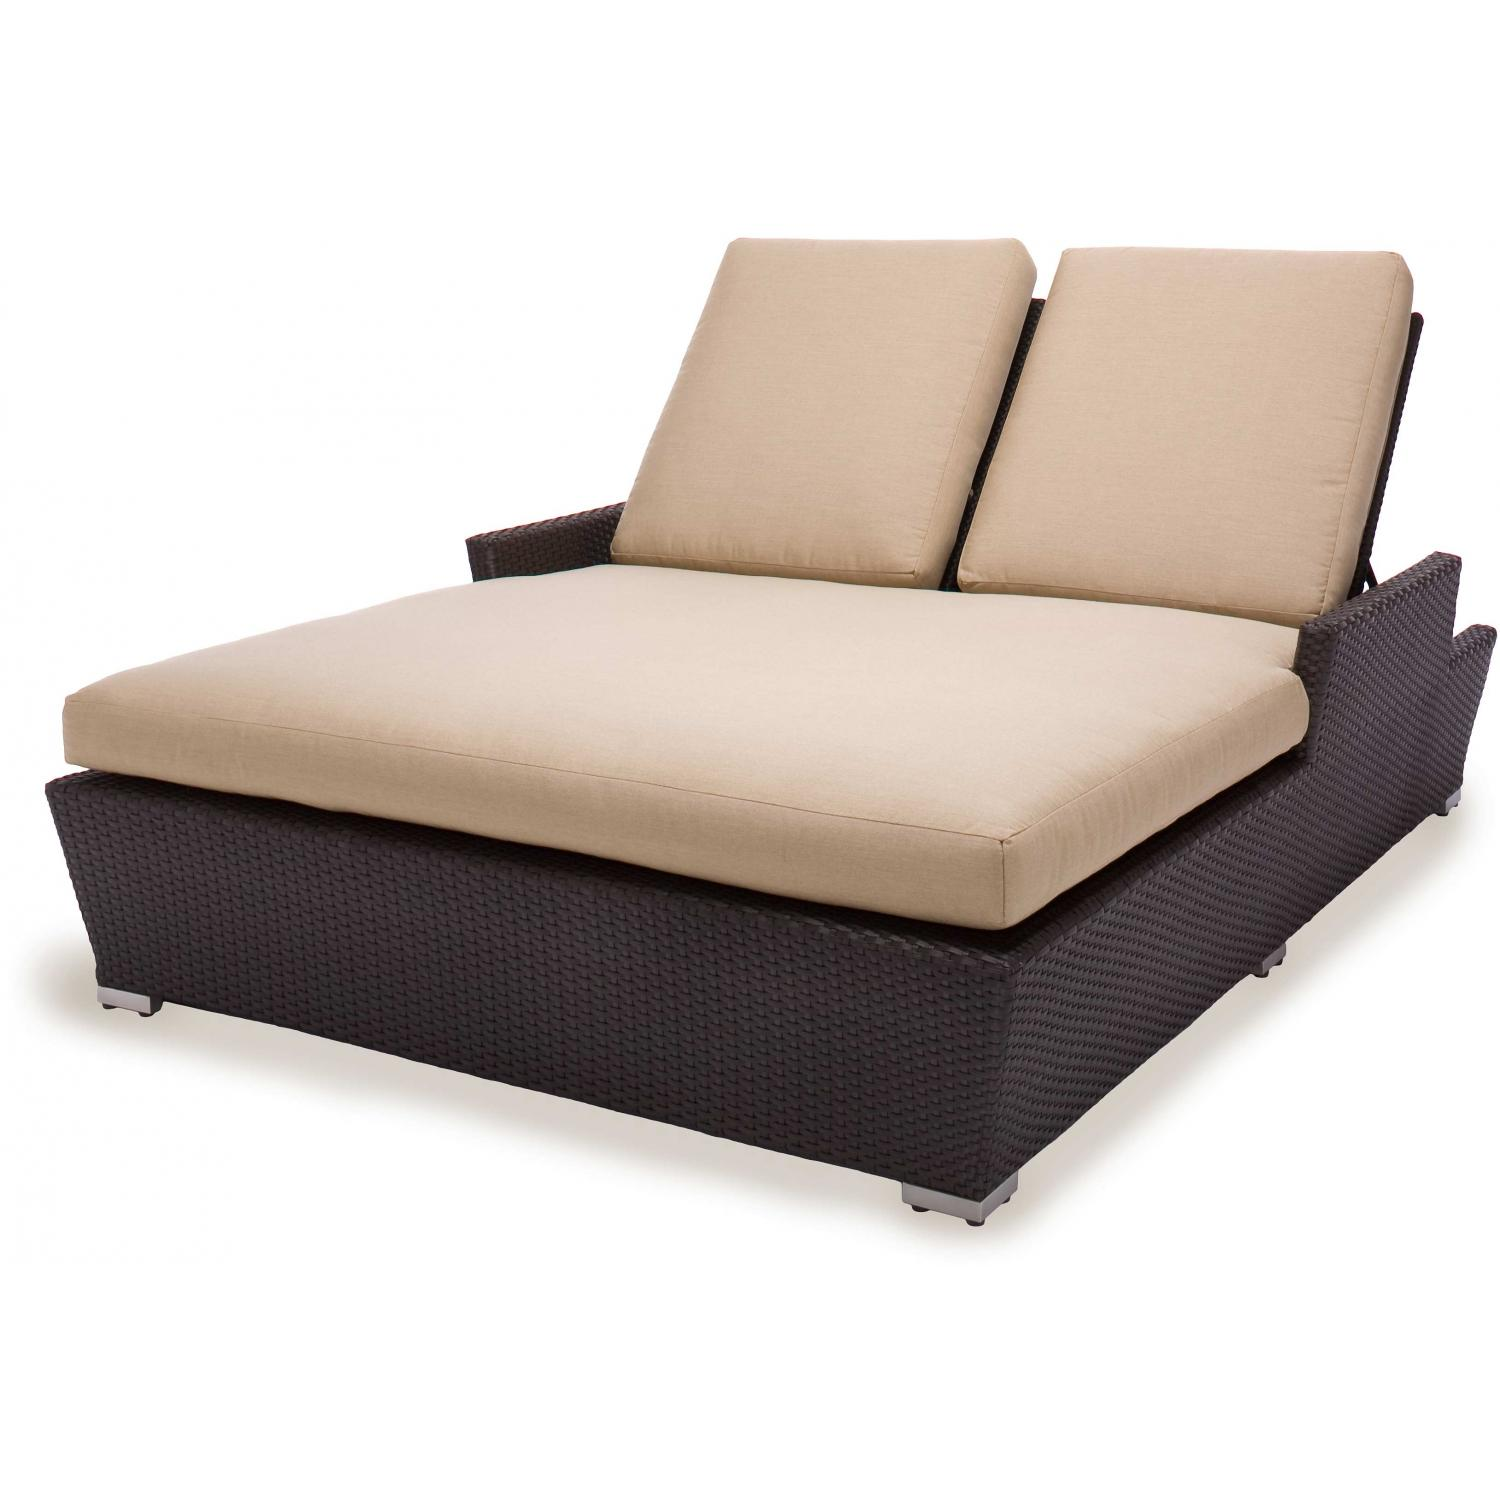 Caluco Maxime Wicker Double Chaise Lounge